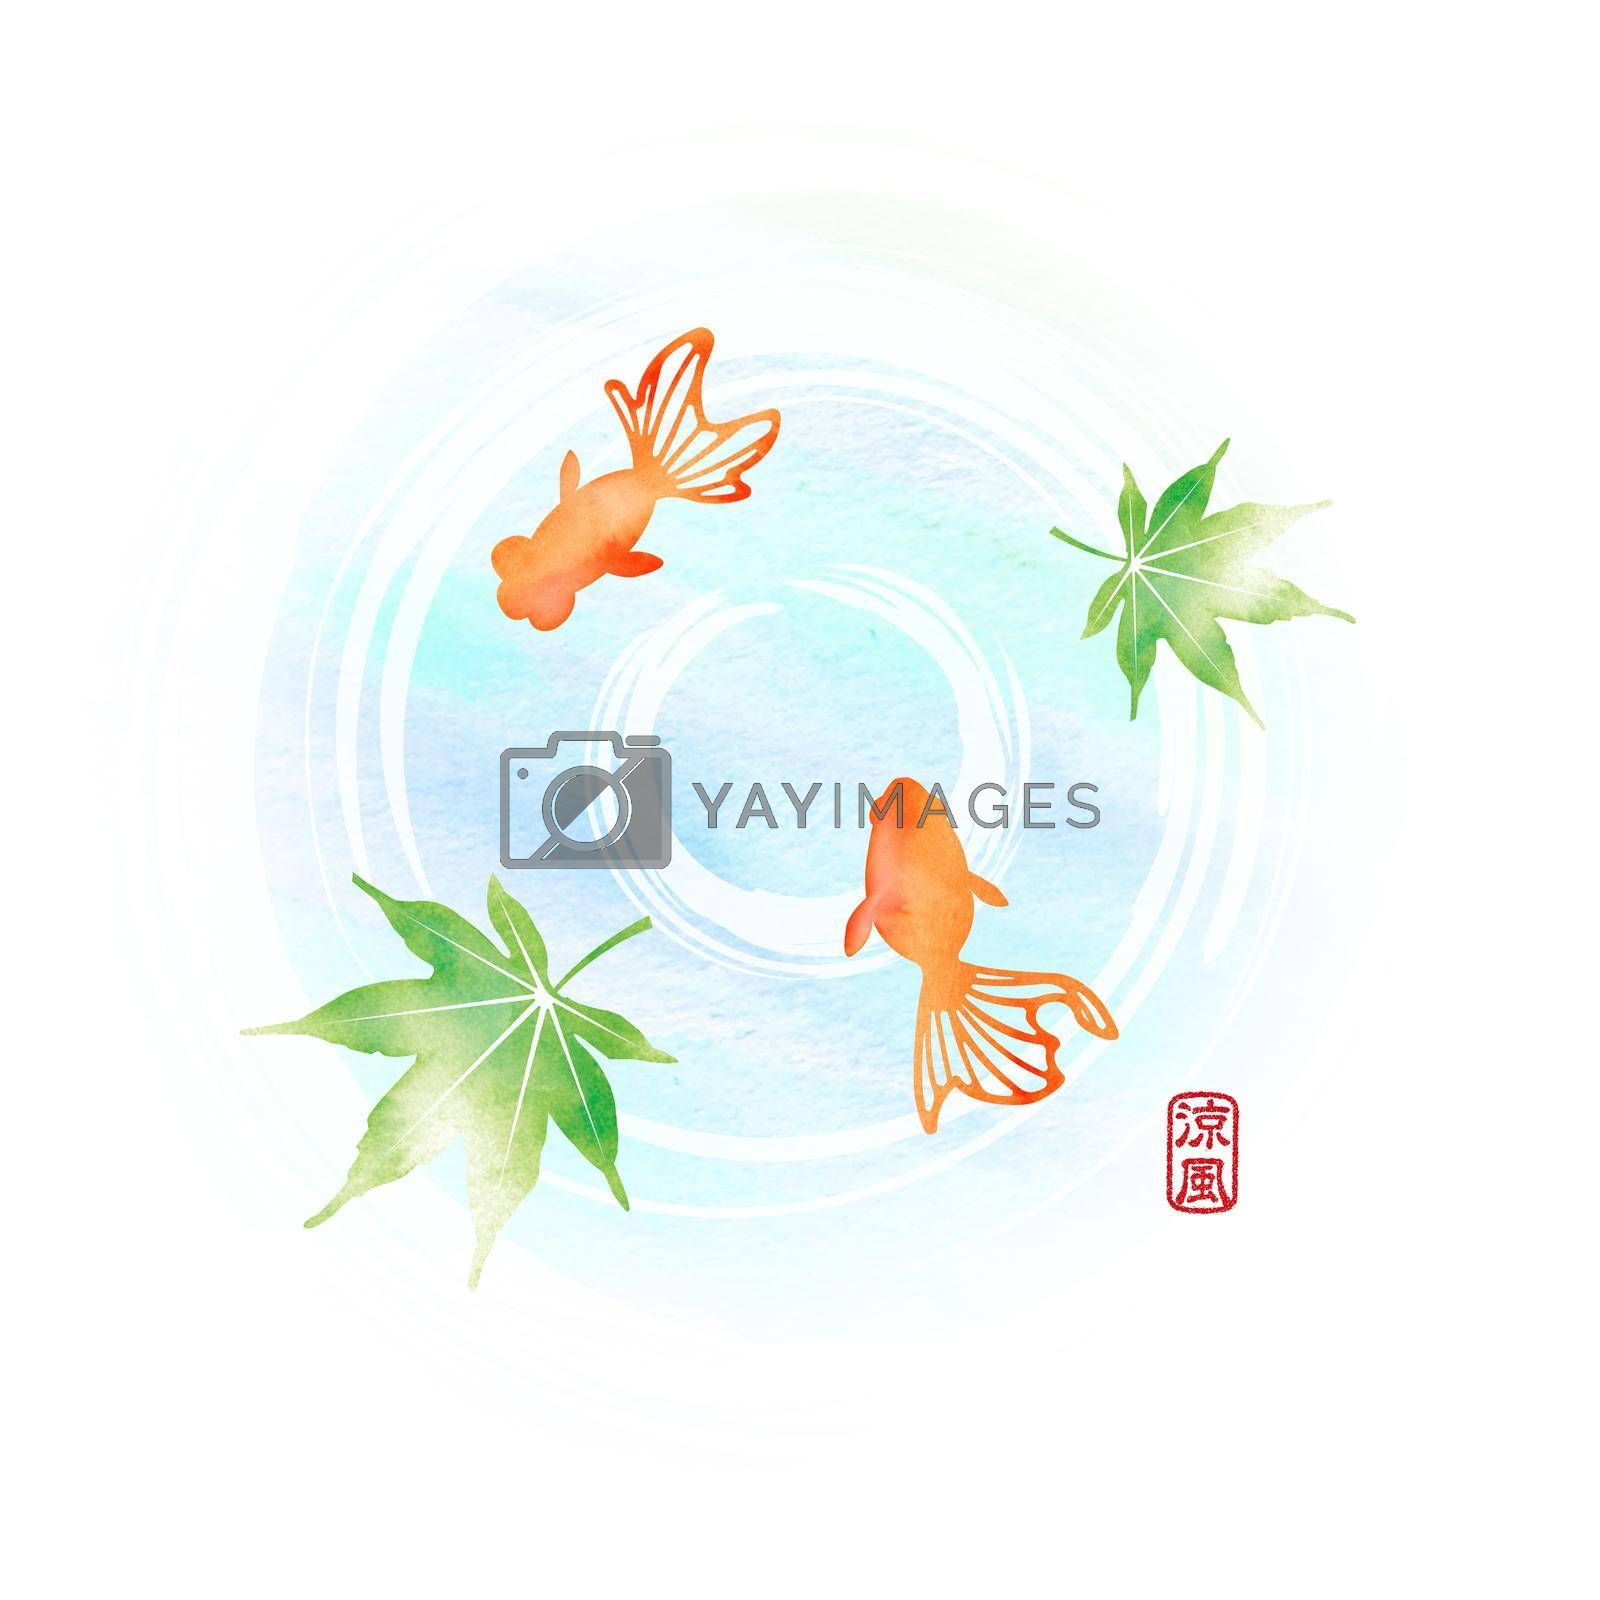 Royalty free image of Summer motif watercolor painting illustration for summer greeting card etc.   Pond and goldfishes by barks